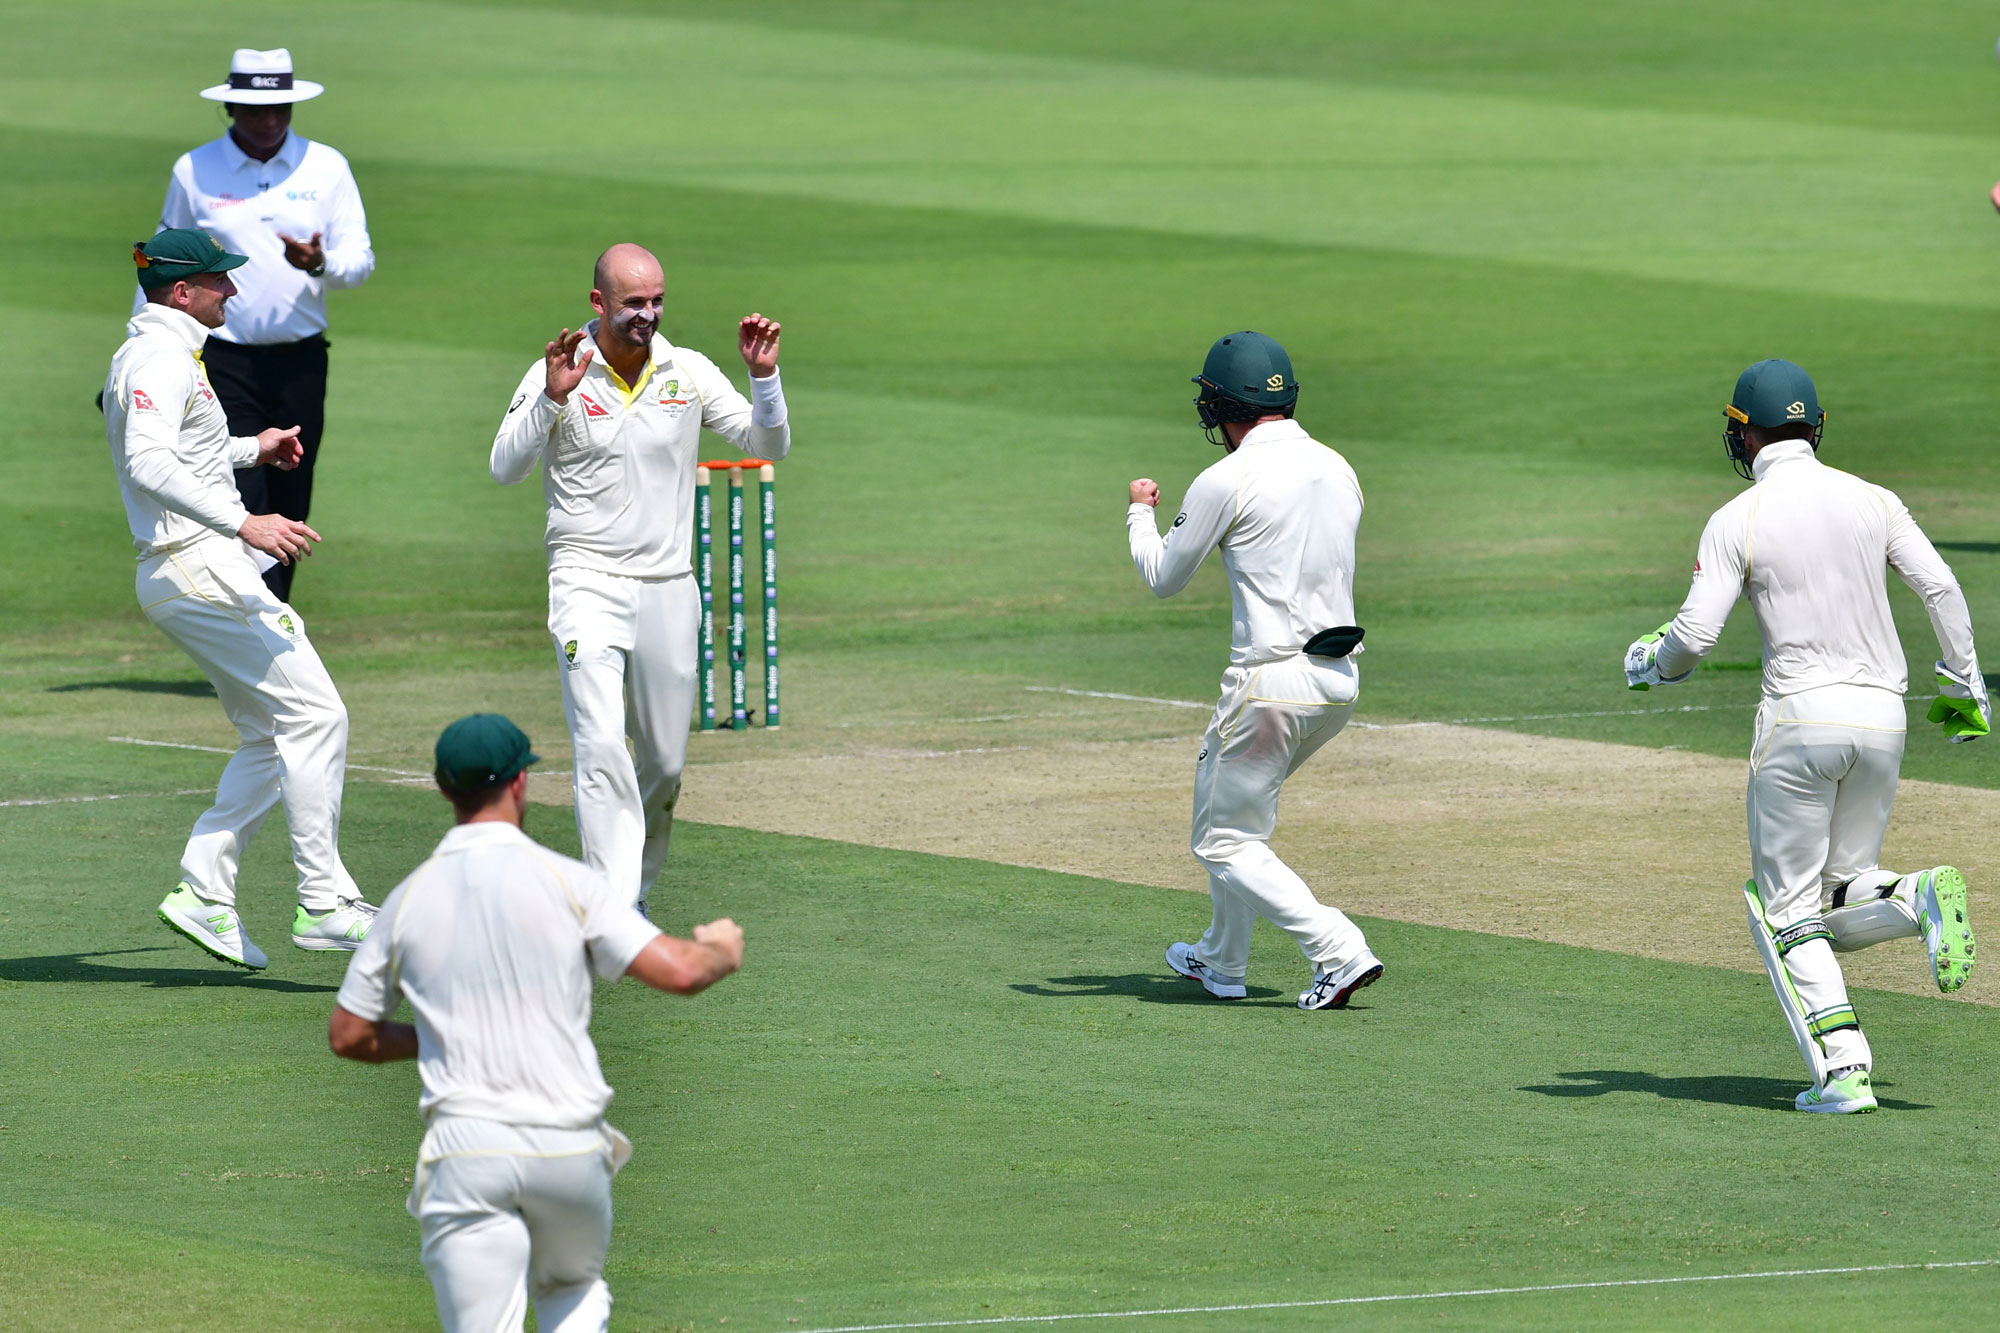 Australia cricketer Nathan Lyon (2nd L) celebrates after he dismissed Pakistan cricketer Asad Shafiq during day one of the second Test cricket match in the series between Australia and Pakistan at the Abu Dhabi Cricket Stadium in Abu Dhabi on October 16,